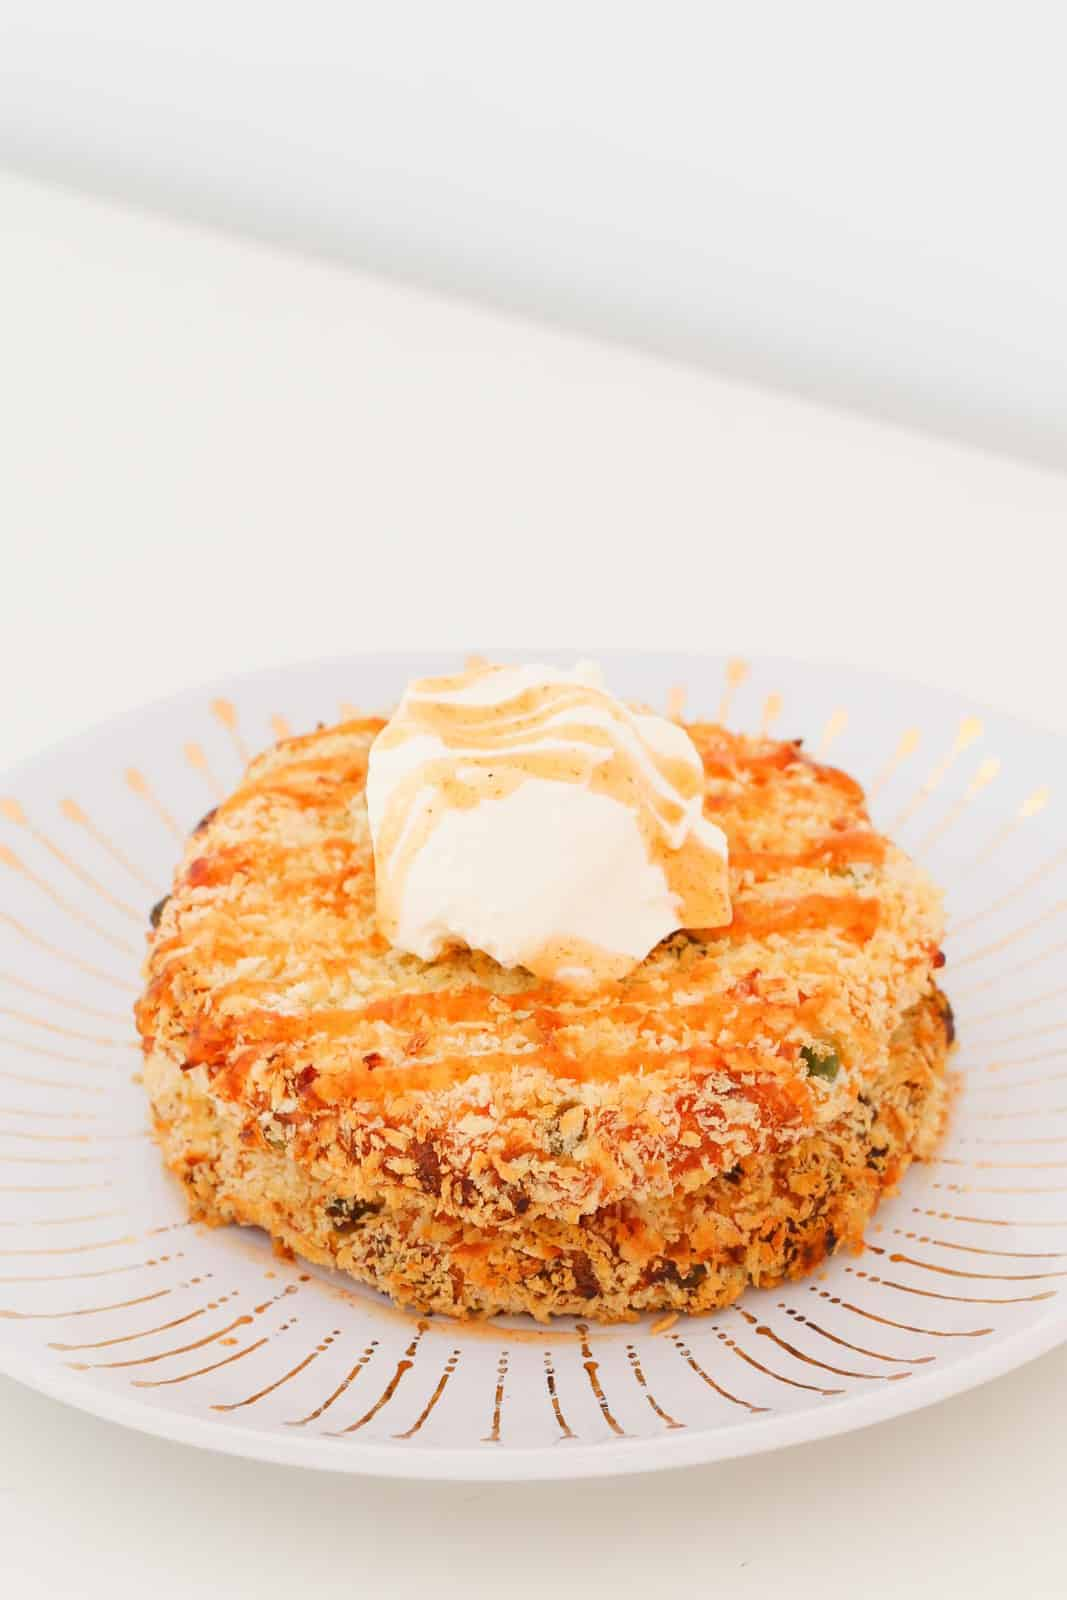 Two panko crumbed potato cakes on a white plate, drizzled with sweet chilli sauce and a dollop of sour cream.